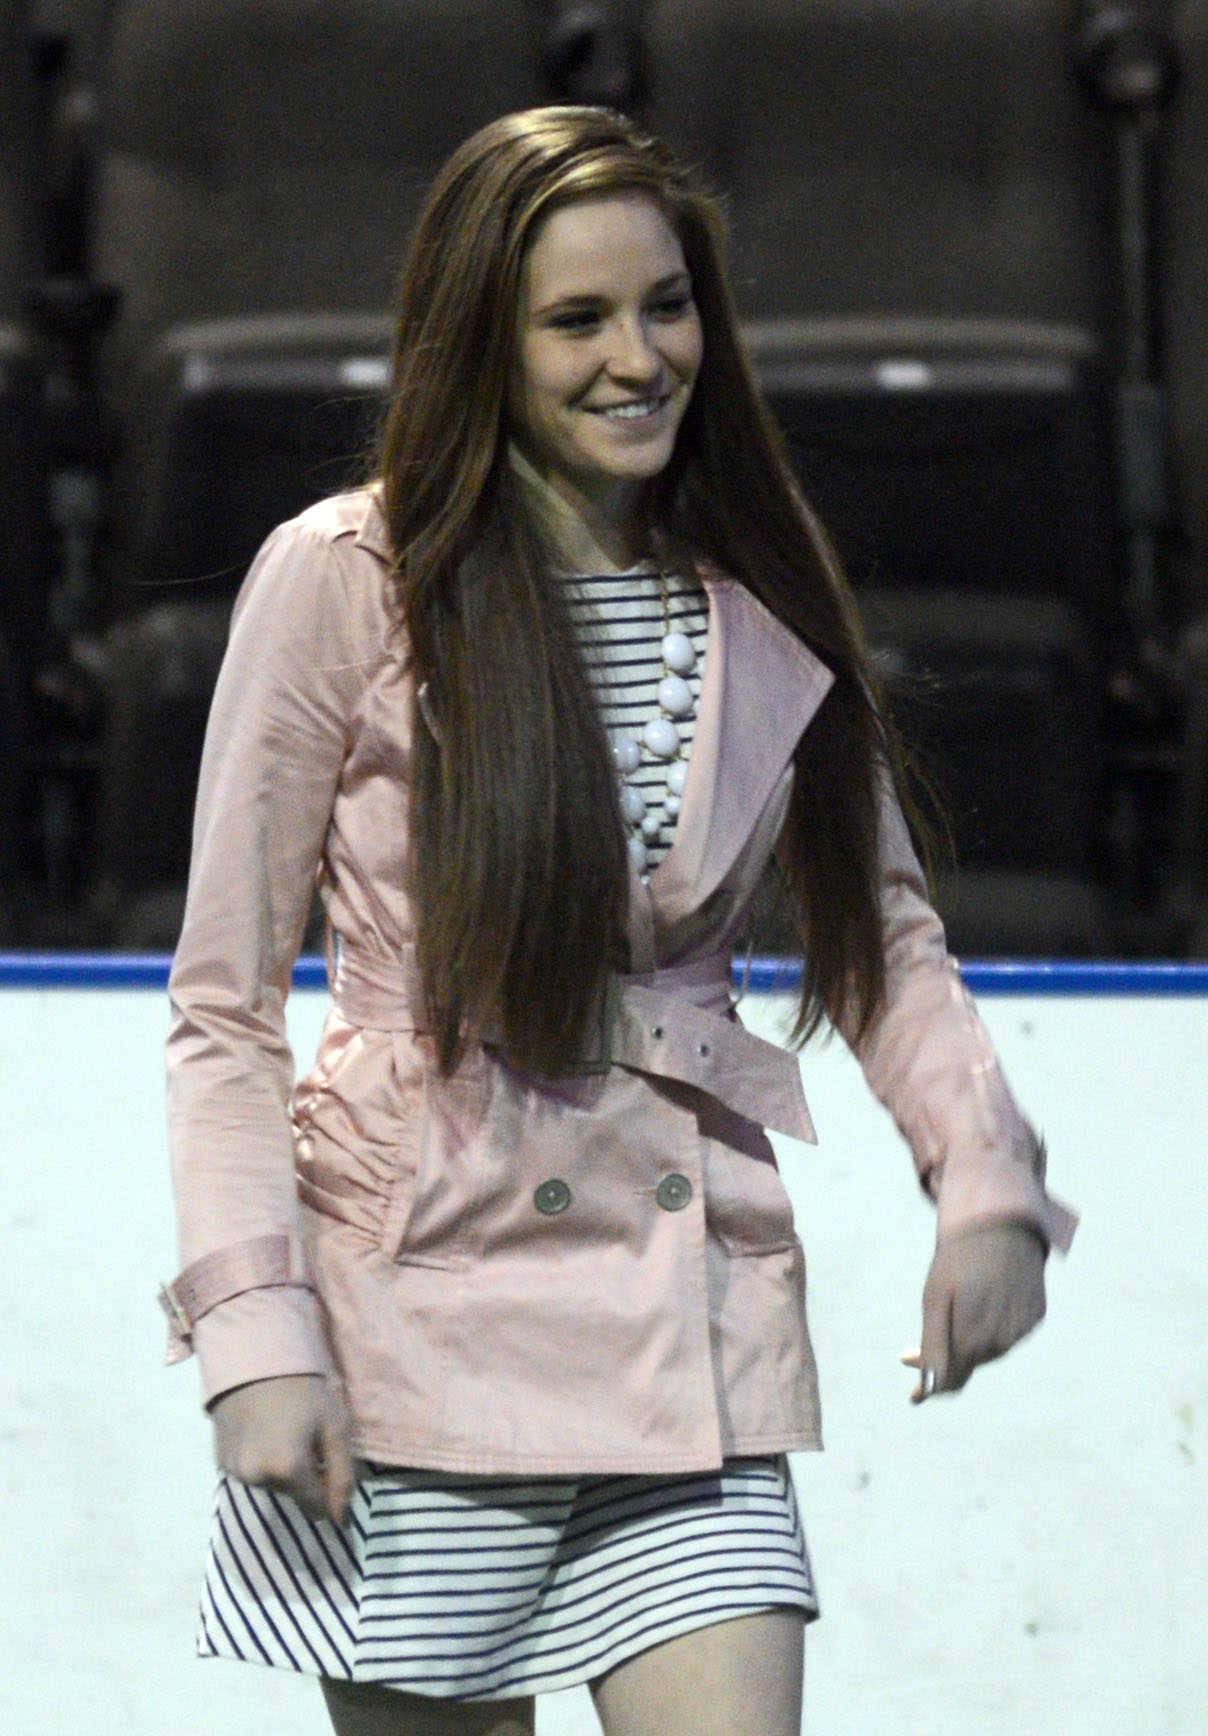 Noreen Caporusso of Prospect High School walks to the stage to receive a Heart & Soul Award as part of the Daily Herald Prep Sports Excellence event at the Sears Centre in Hoffman Estates on Sunday afternoon. Caporusso returned from severe knee injury to lead the Prospect girls golf team to a state title.